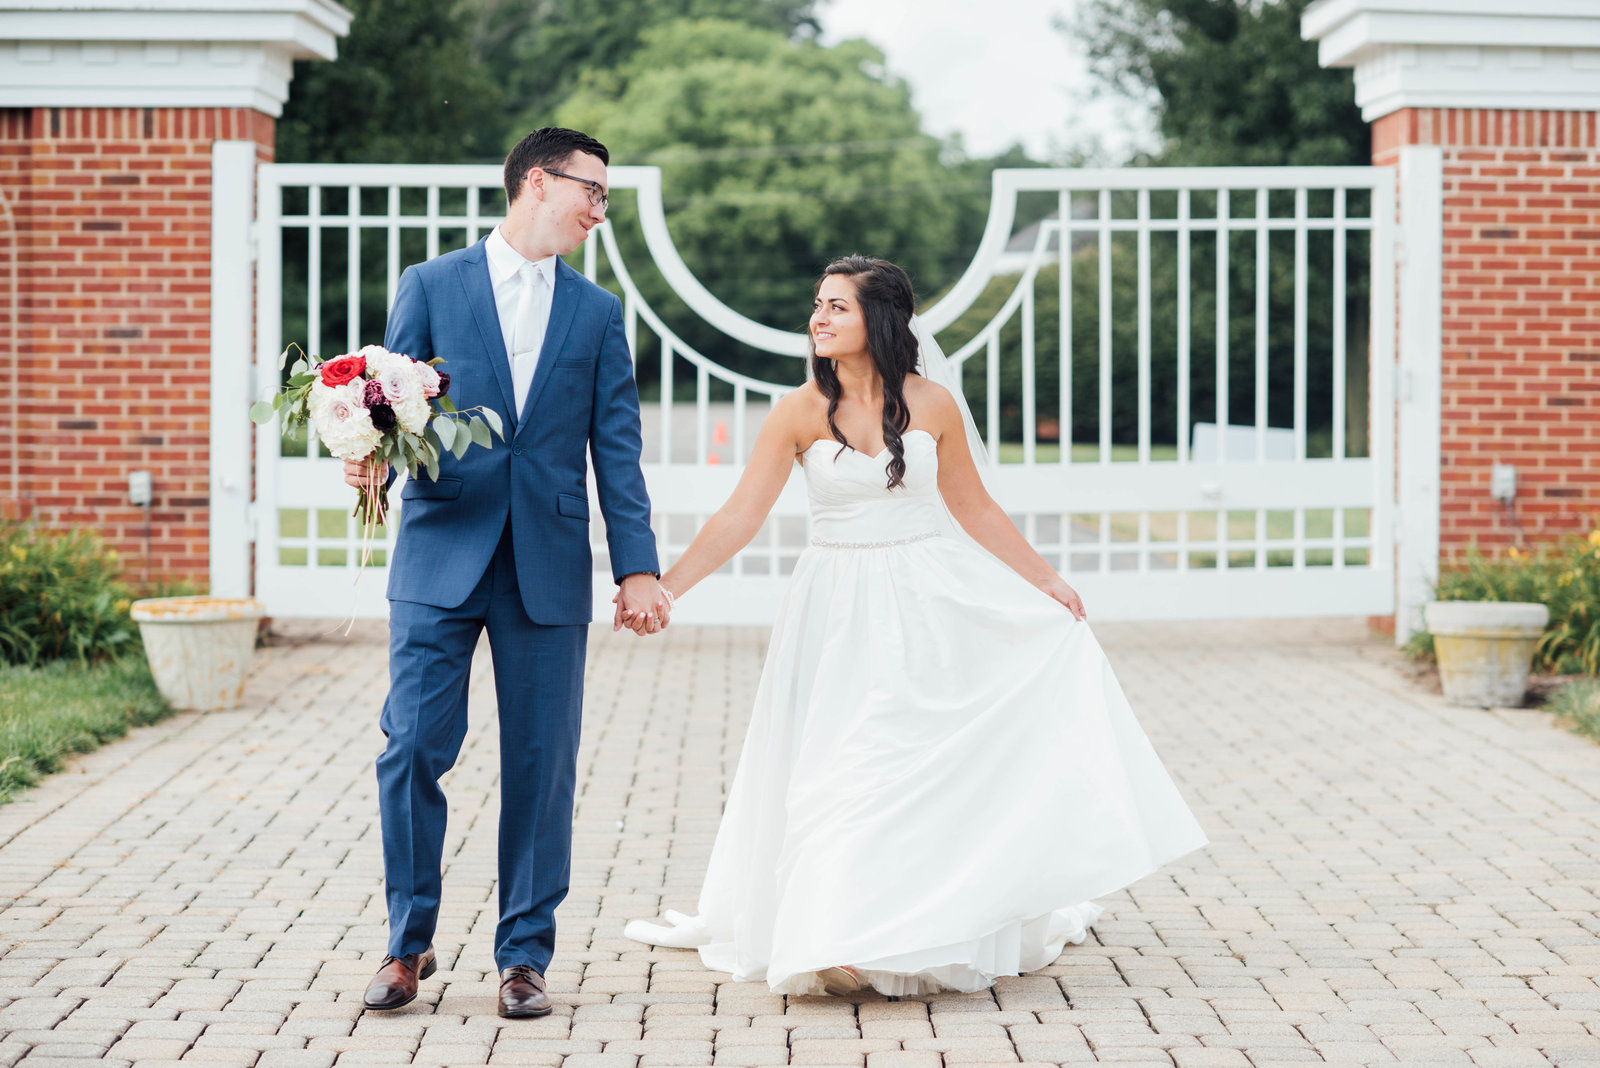 MrandMrs Combs 2018- AMHP-0139